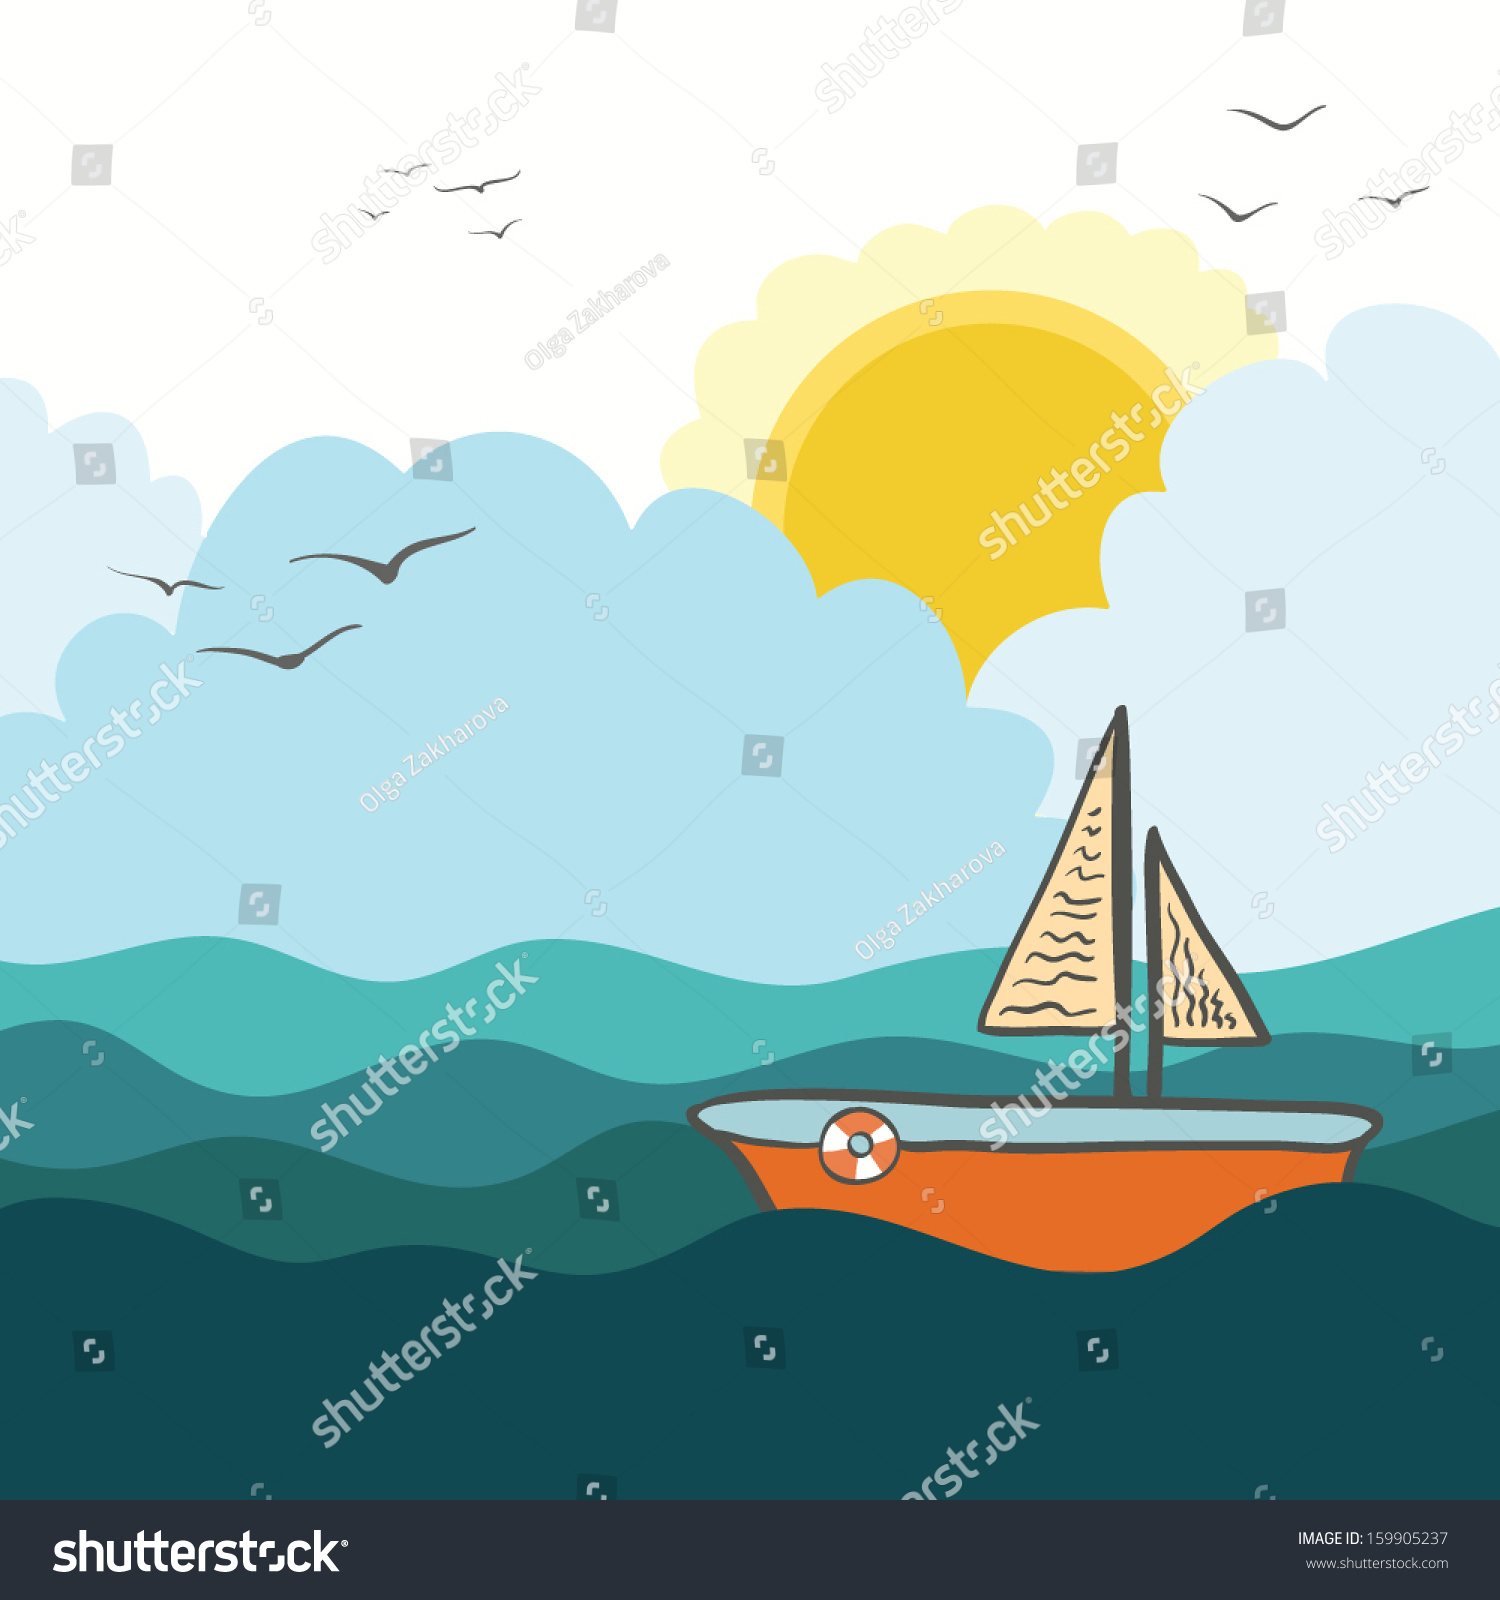 Beautiful And Peaceful Sailing Illustration With Boat